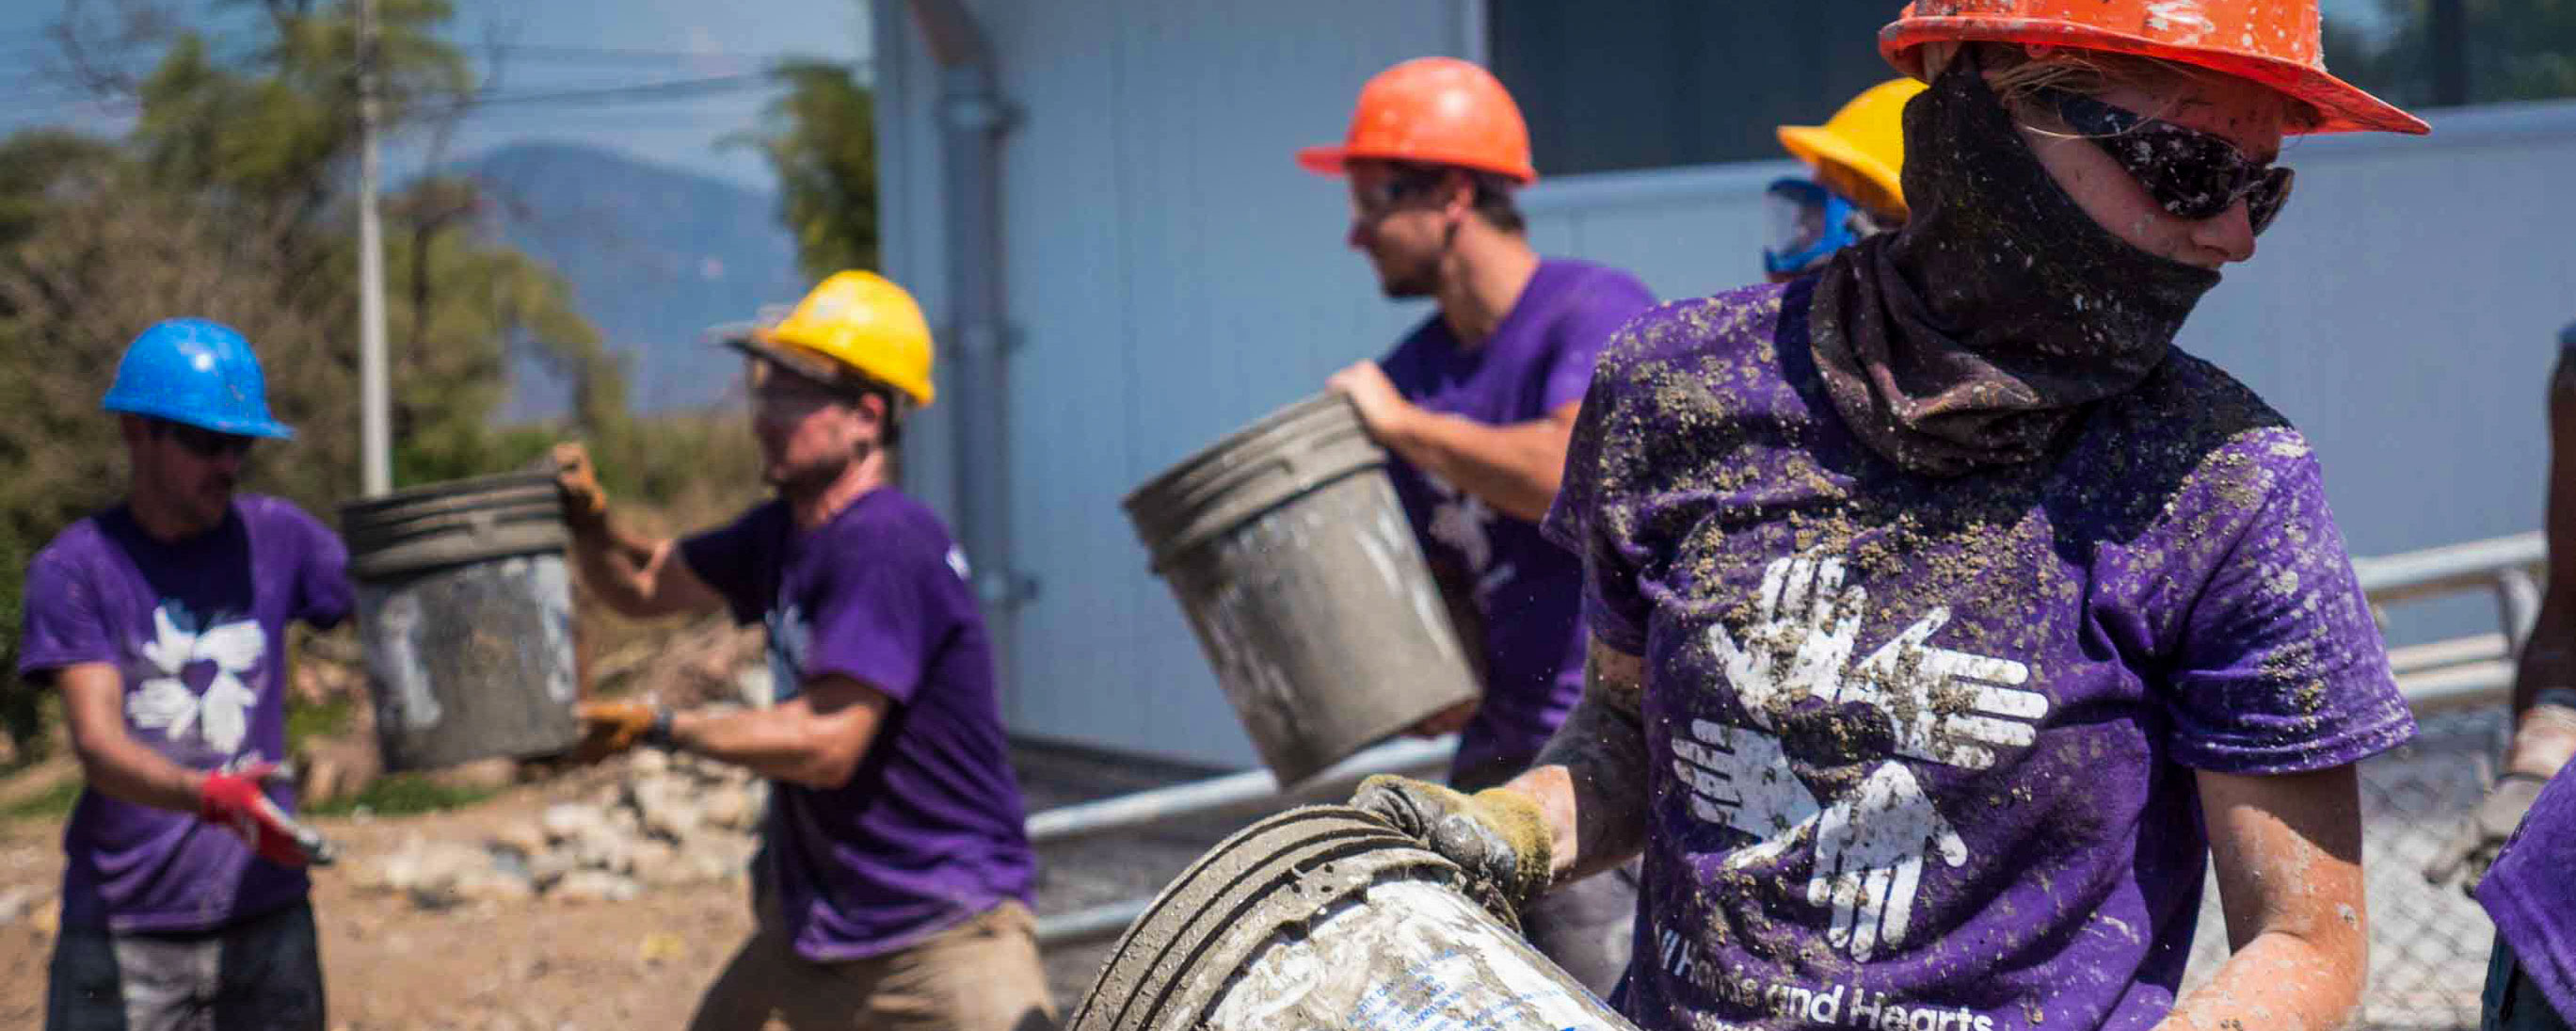 Donate or Volunteer to Support Disaster Relief | All Hands